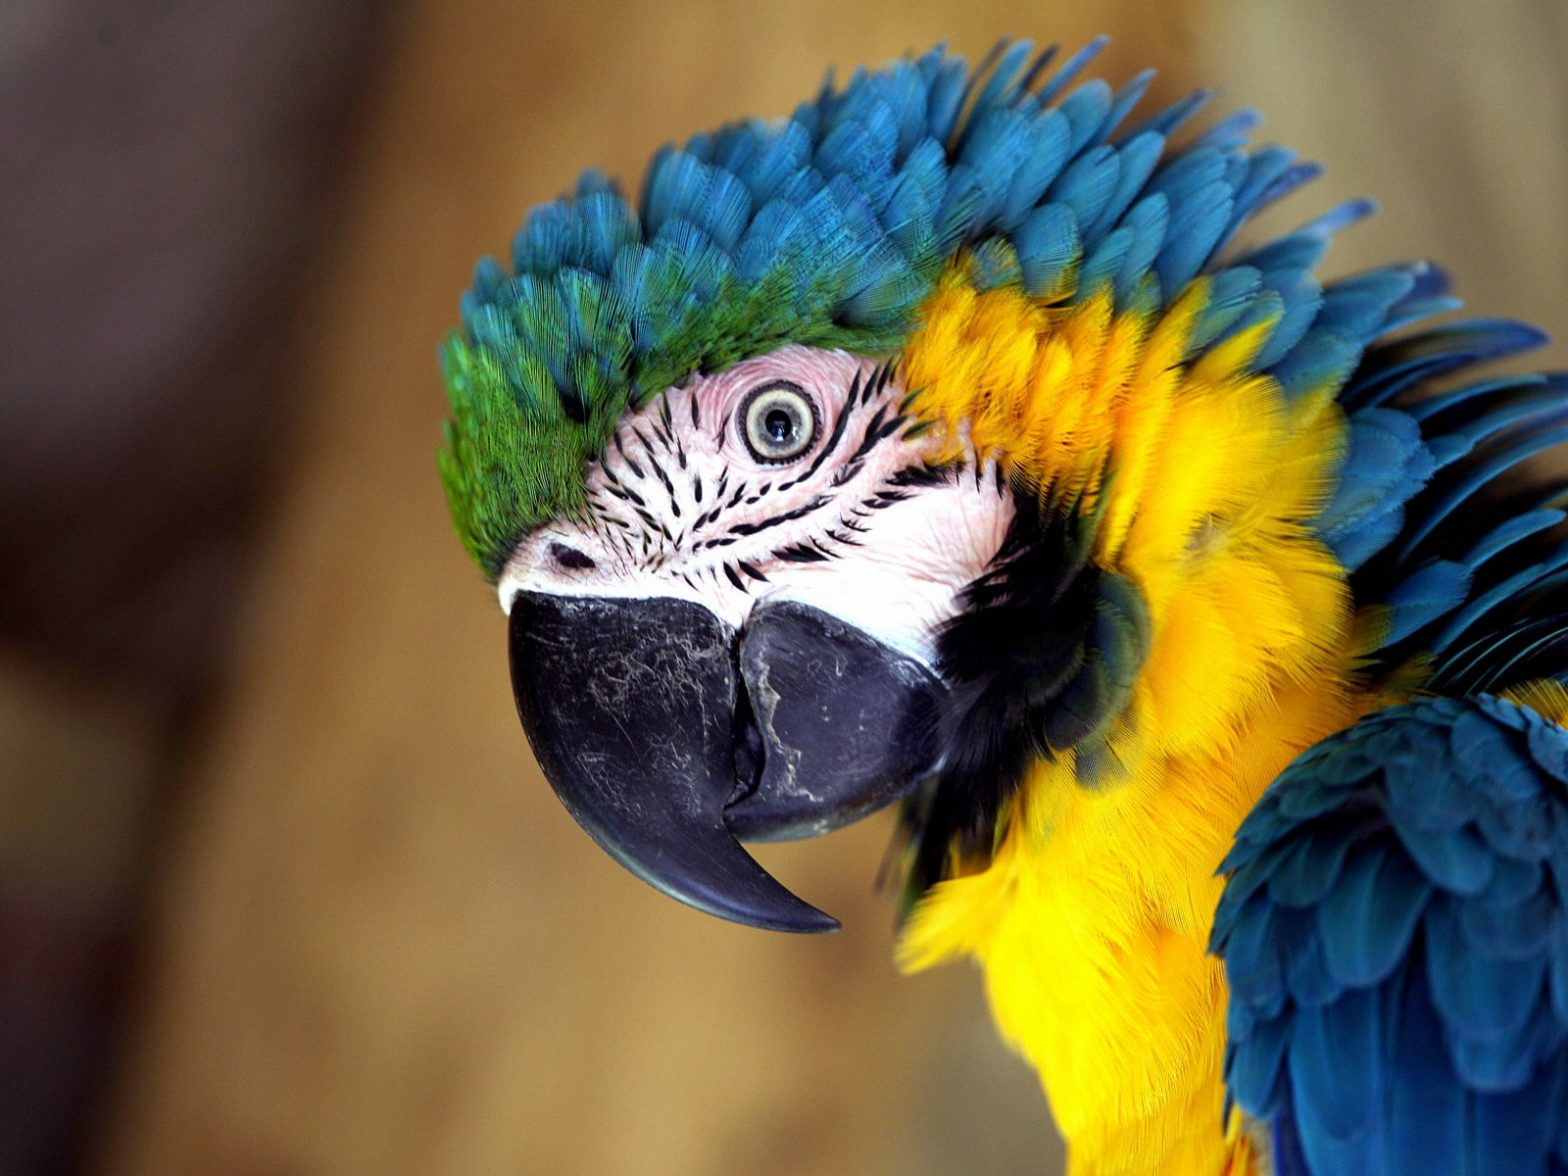 Best tips for caring a parrot